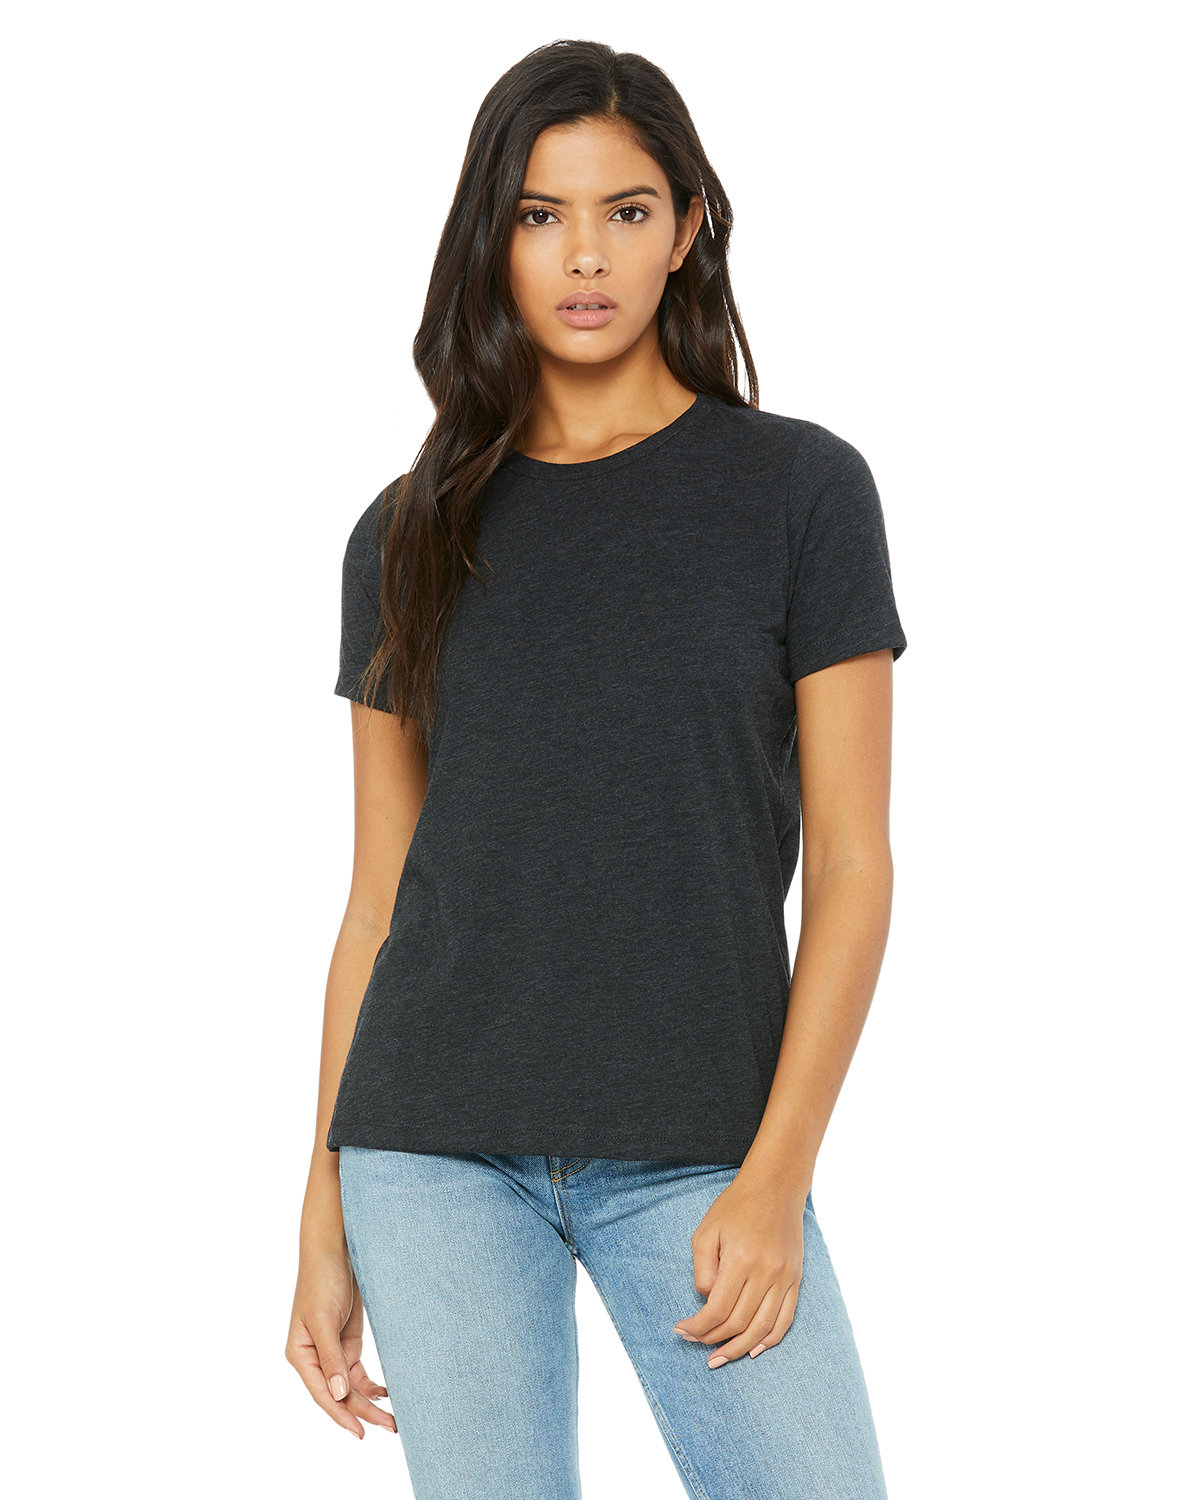 Bella + Canvas Ladies' Relaxed Triblend T-Shirt CHAR-BLK TRIBLND